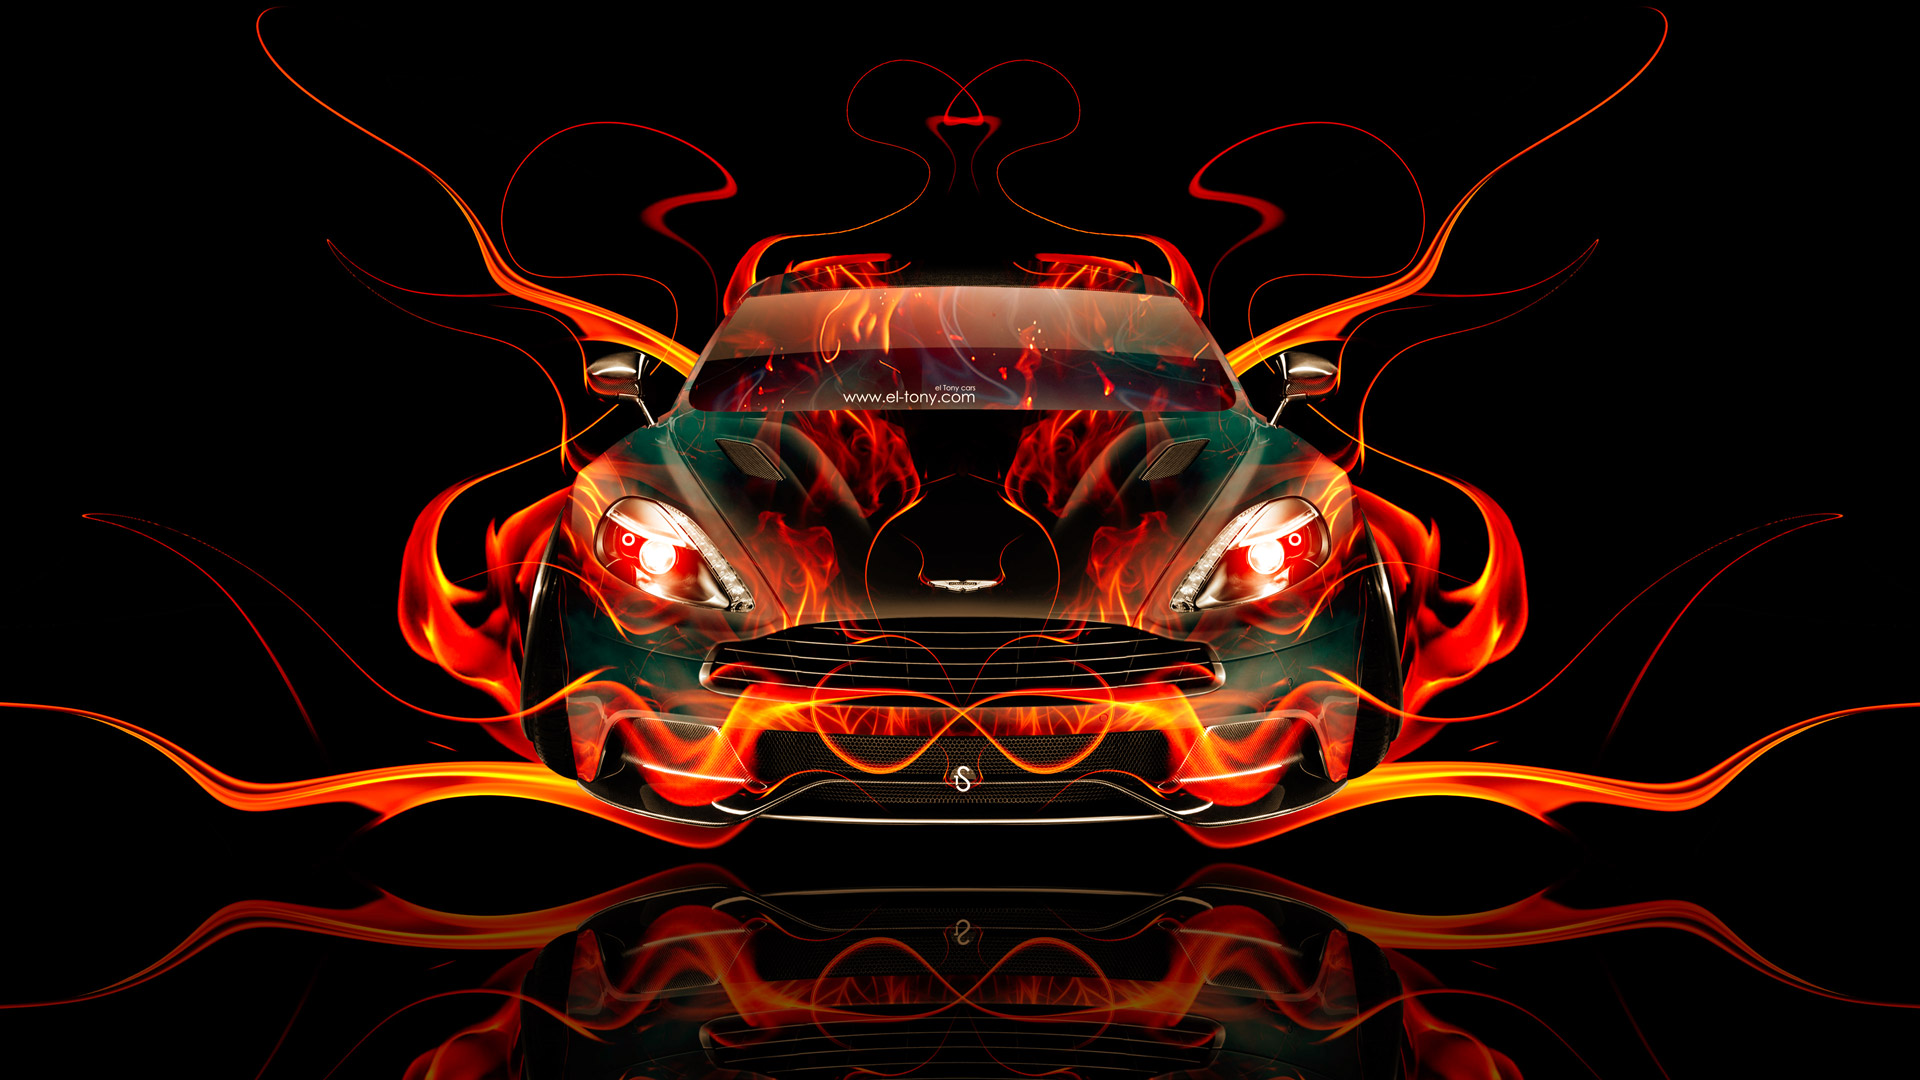 Incroyable Aston Martin Vanquish FrontUp Super Fire Abstract Car